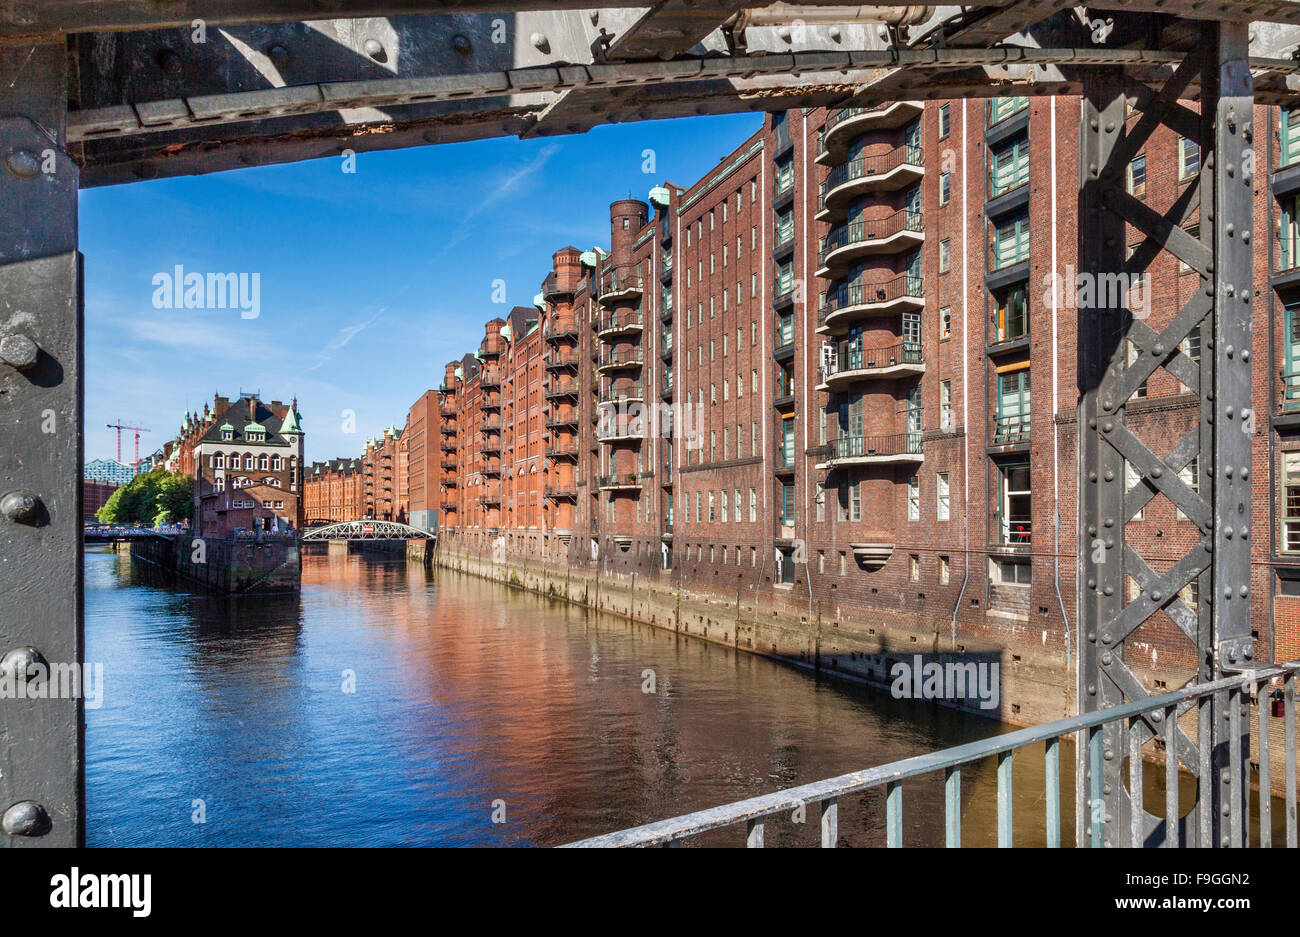 Germany, Free and Hanseatic City of Hamburg, the Neo-Gothic red-brick warehouses of the Speicherstadt at Wandrahmsfleet - Stock Image